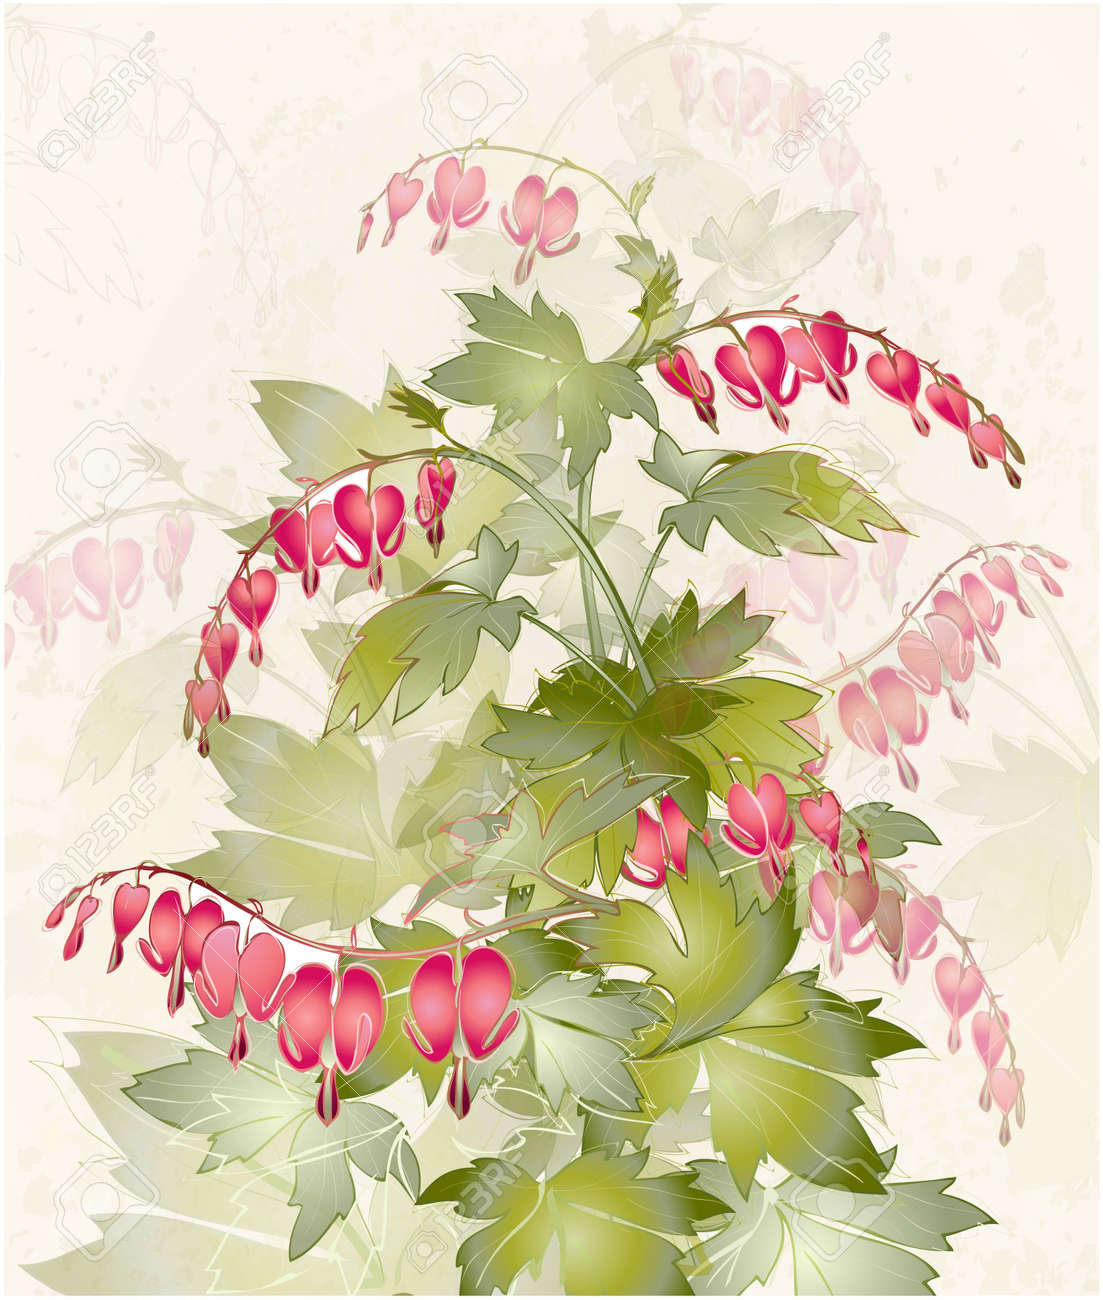 Illustration bleeding heart dicentra spectabilis greeting illustration bleeding heart dicentra spectabilis greeting card with flower colorful fresh spring flower izmirmasajfo